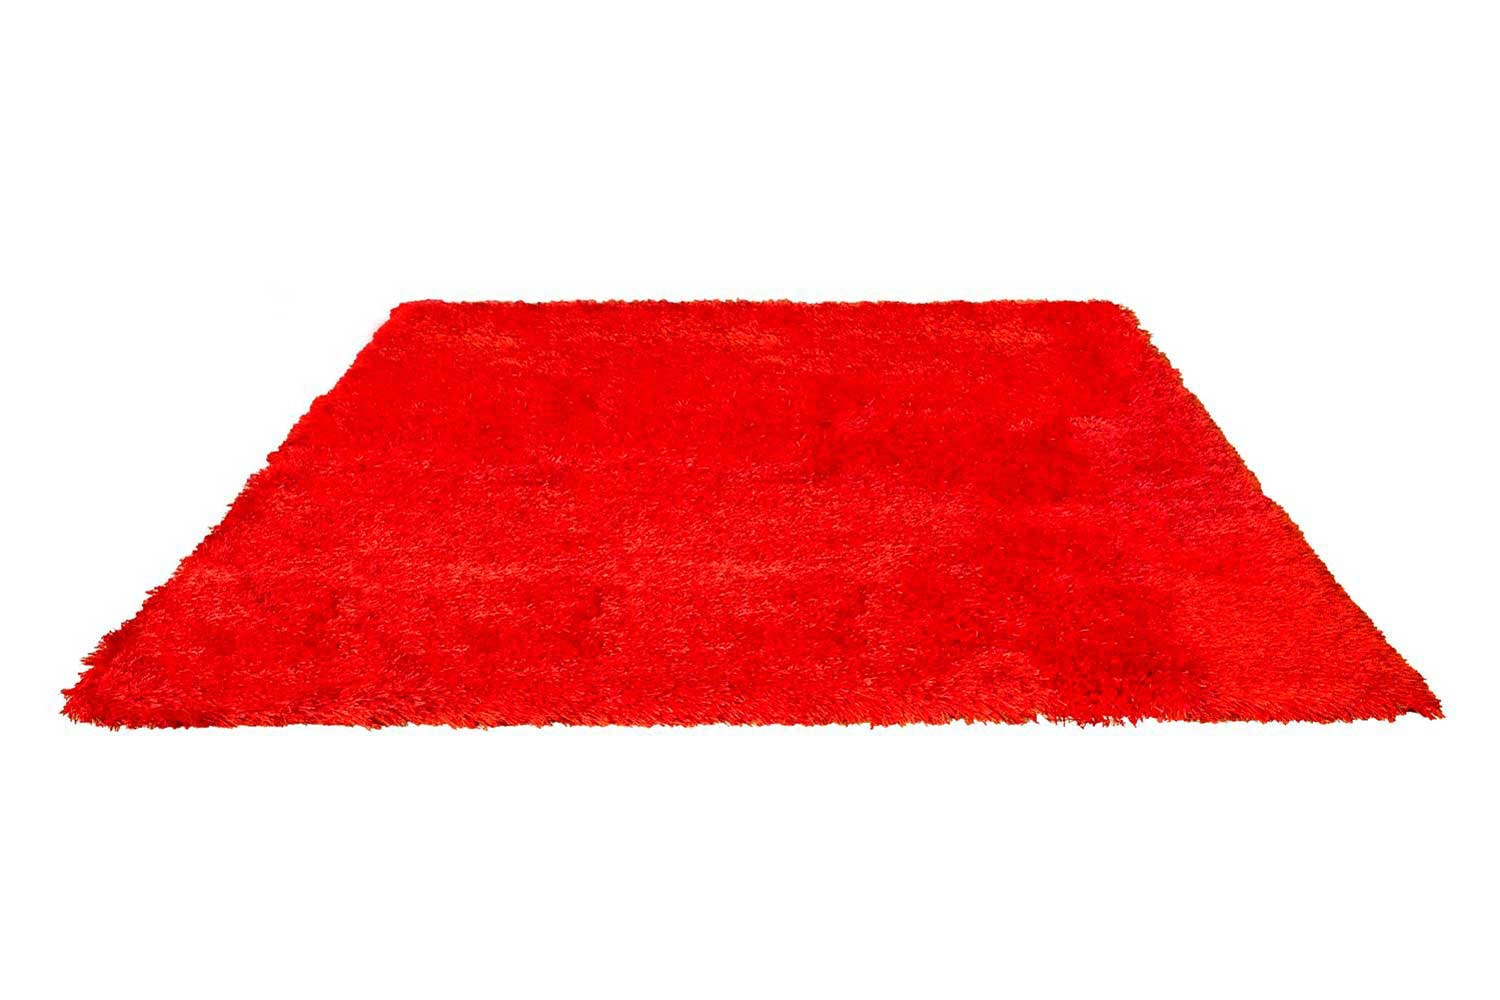 Tiffany Rug - Red\Flame